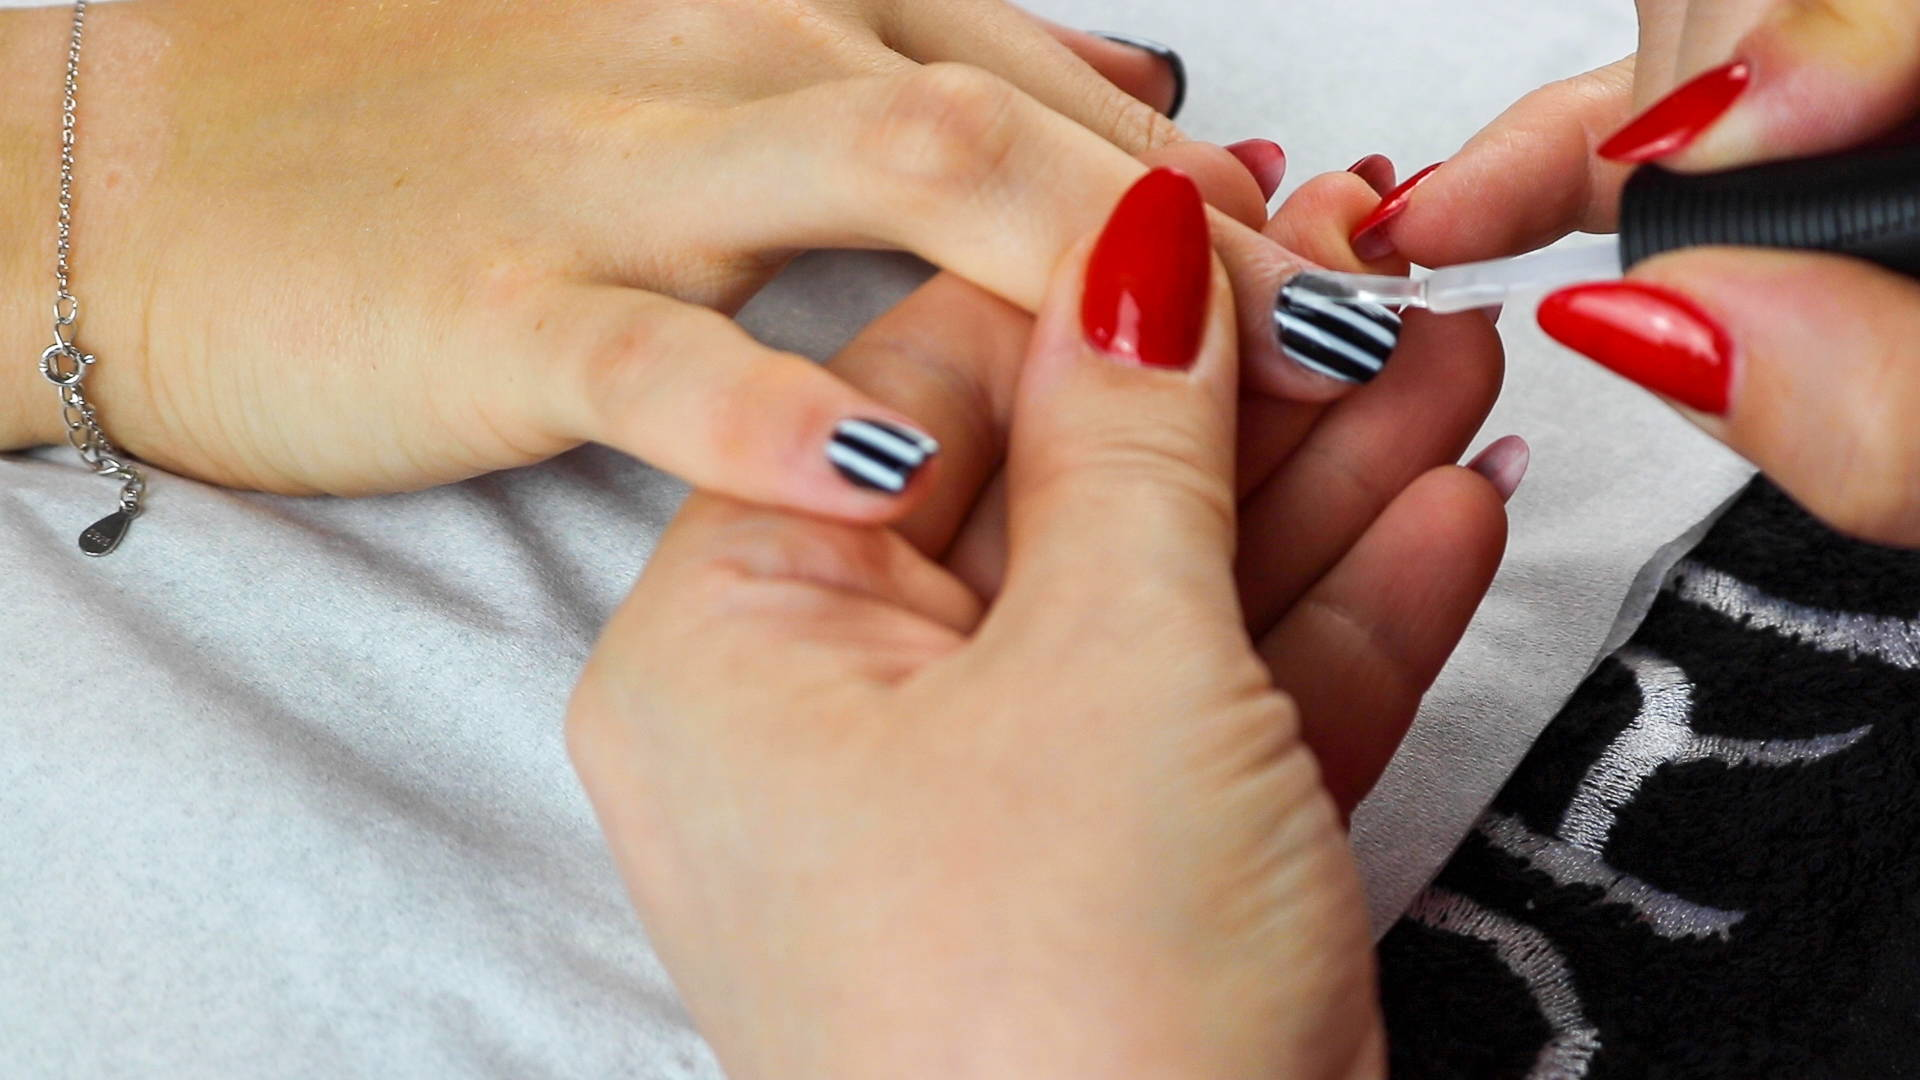 ORLY Glosser Topcoat being painted onto complete Jack Skellington nails